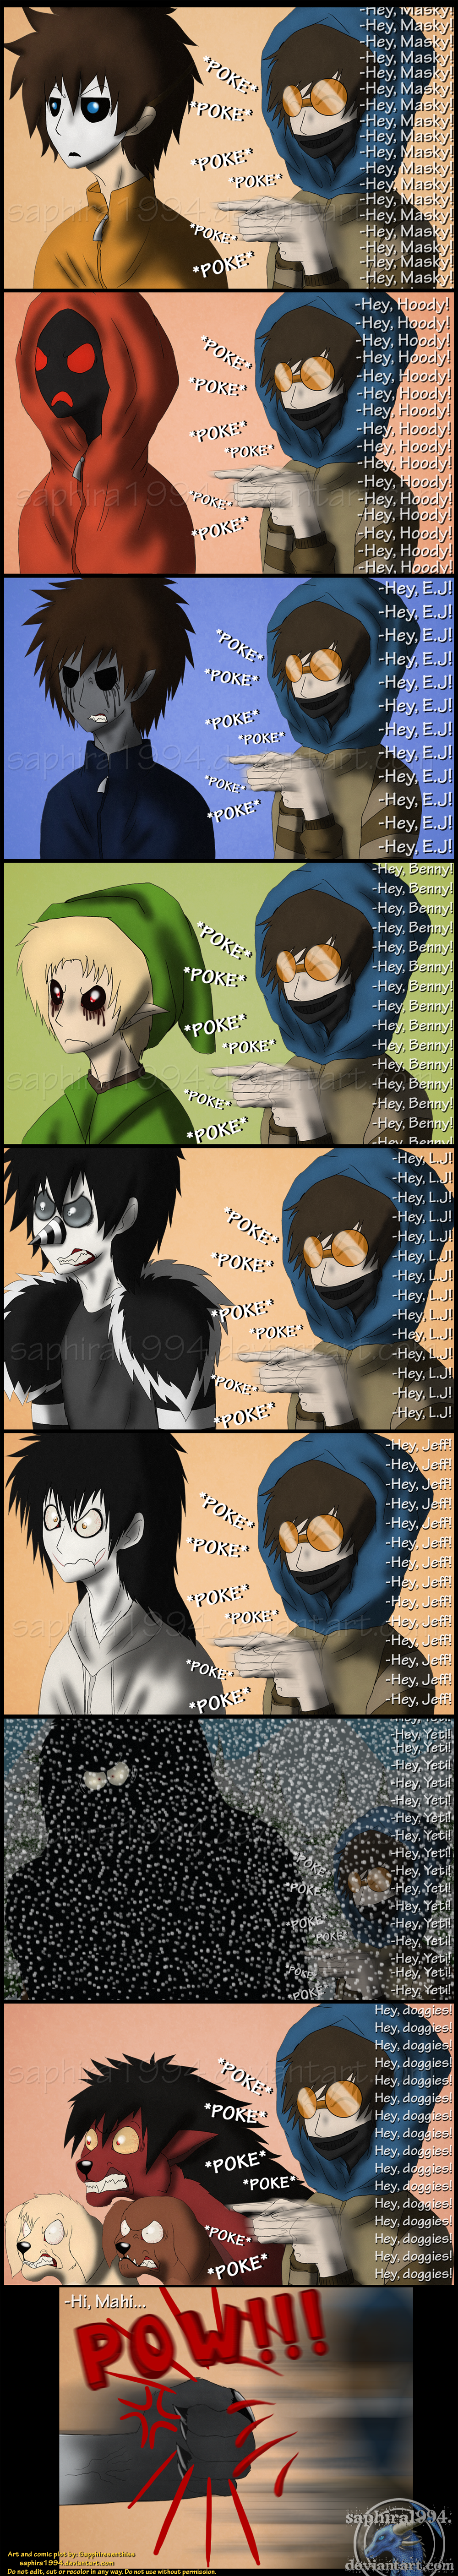 Adventures With Jeff The Killer - PAGE 62 by Sapphiresenthiss